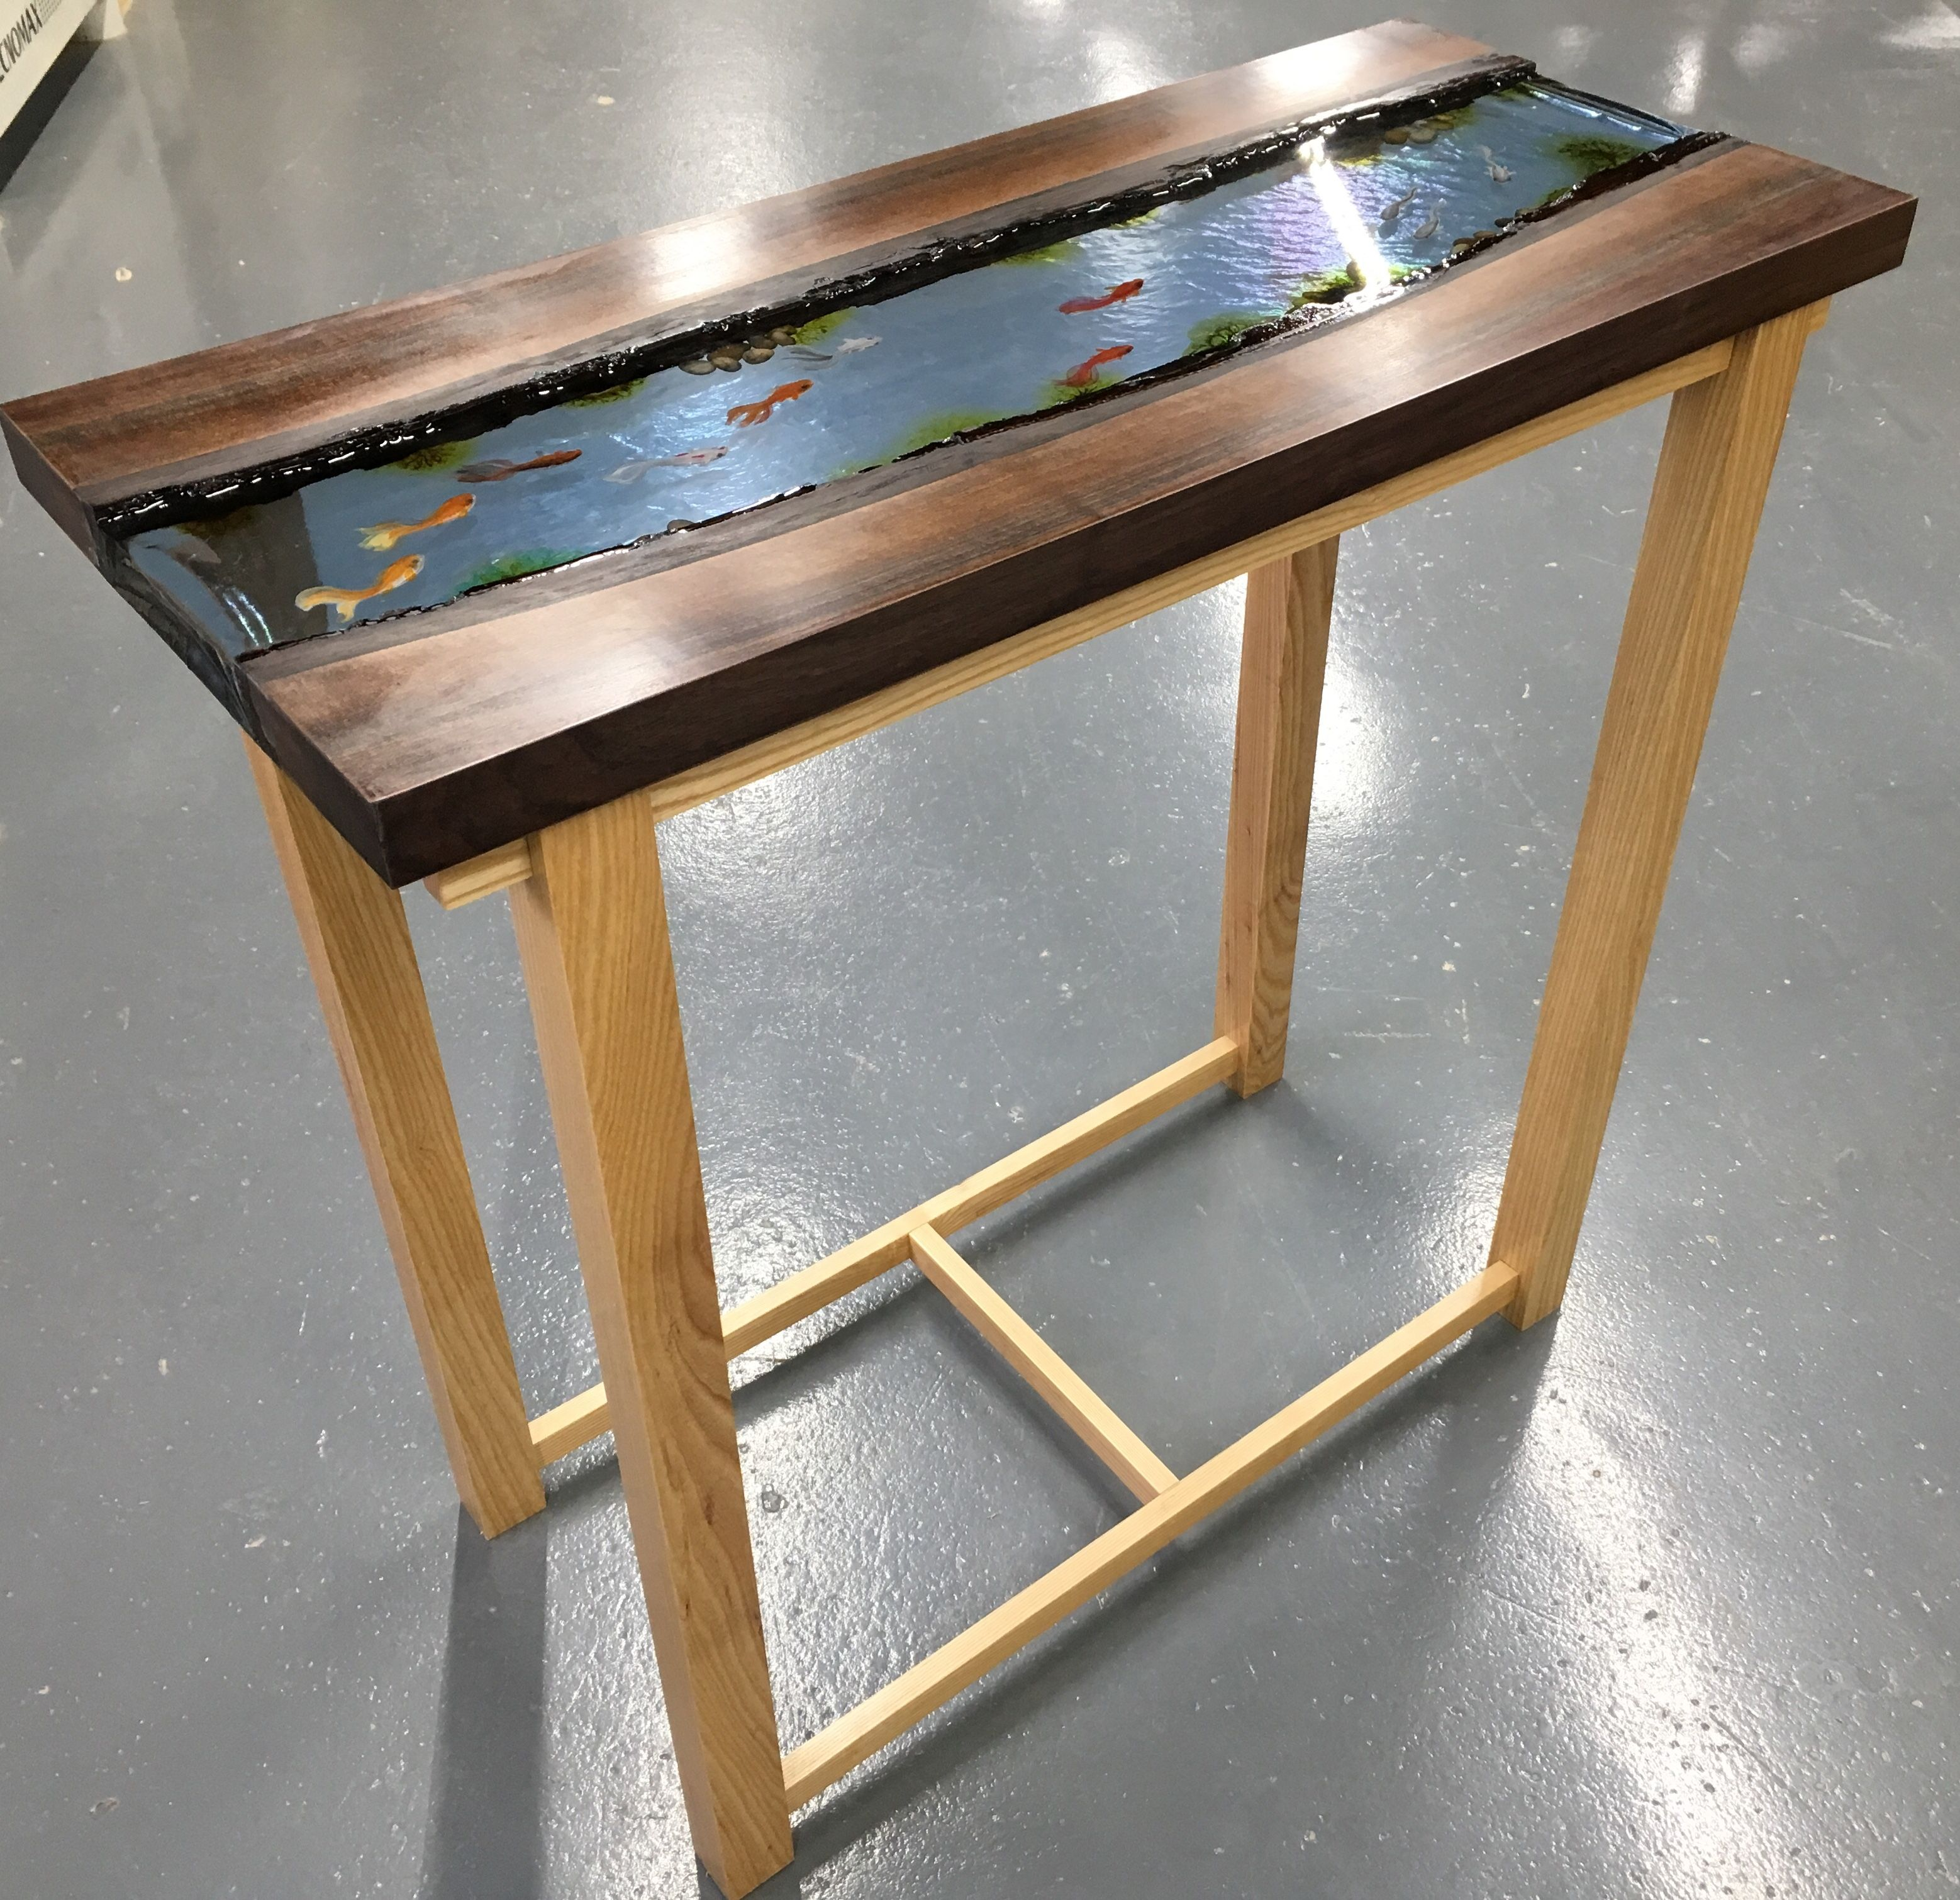 Walnut And Ash River Table Epoxy Resin With Fish Painted In